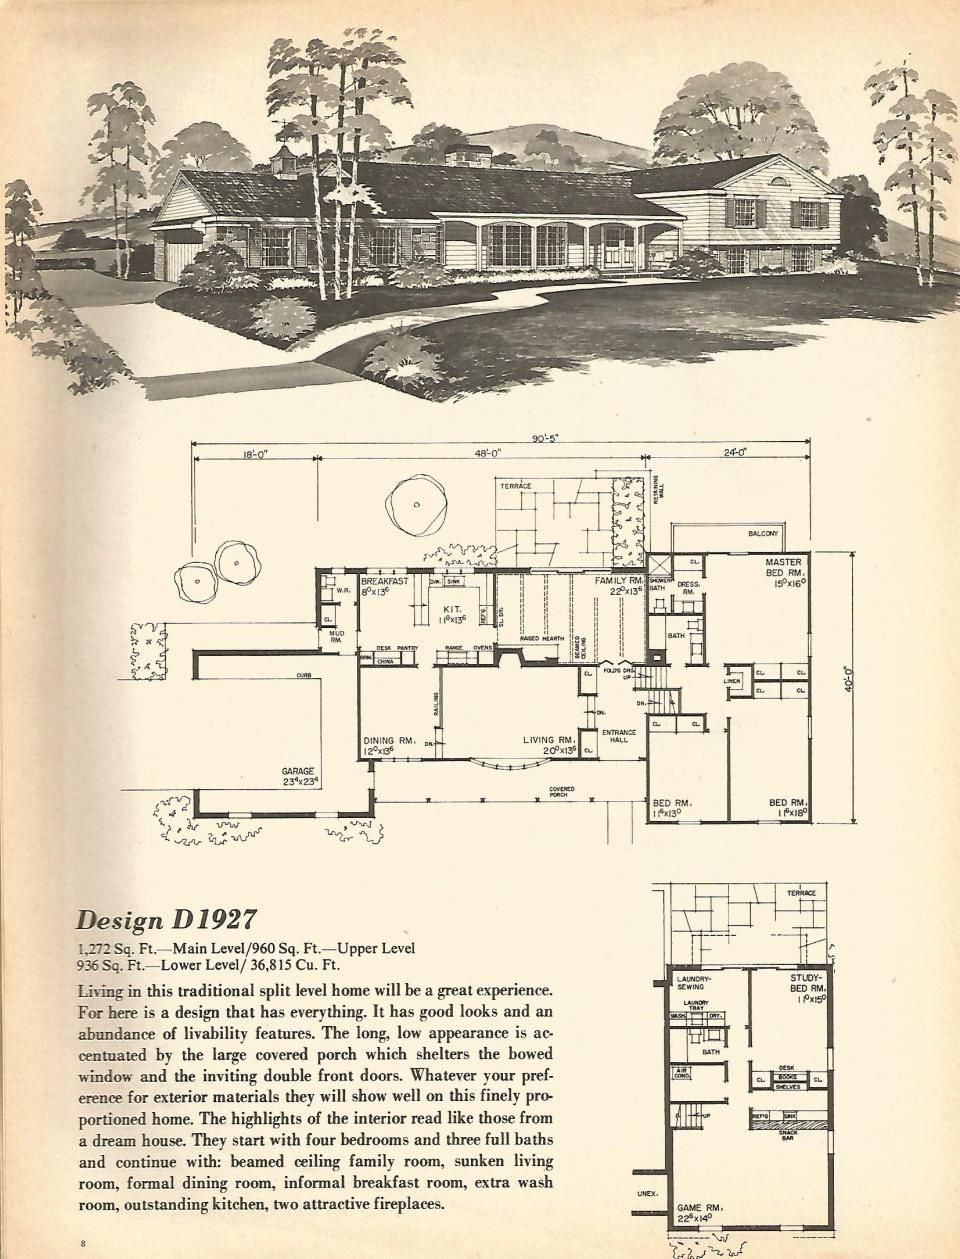 Vintage house plans, mid century homes, split level homes | Good Old ...